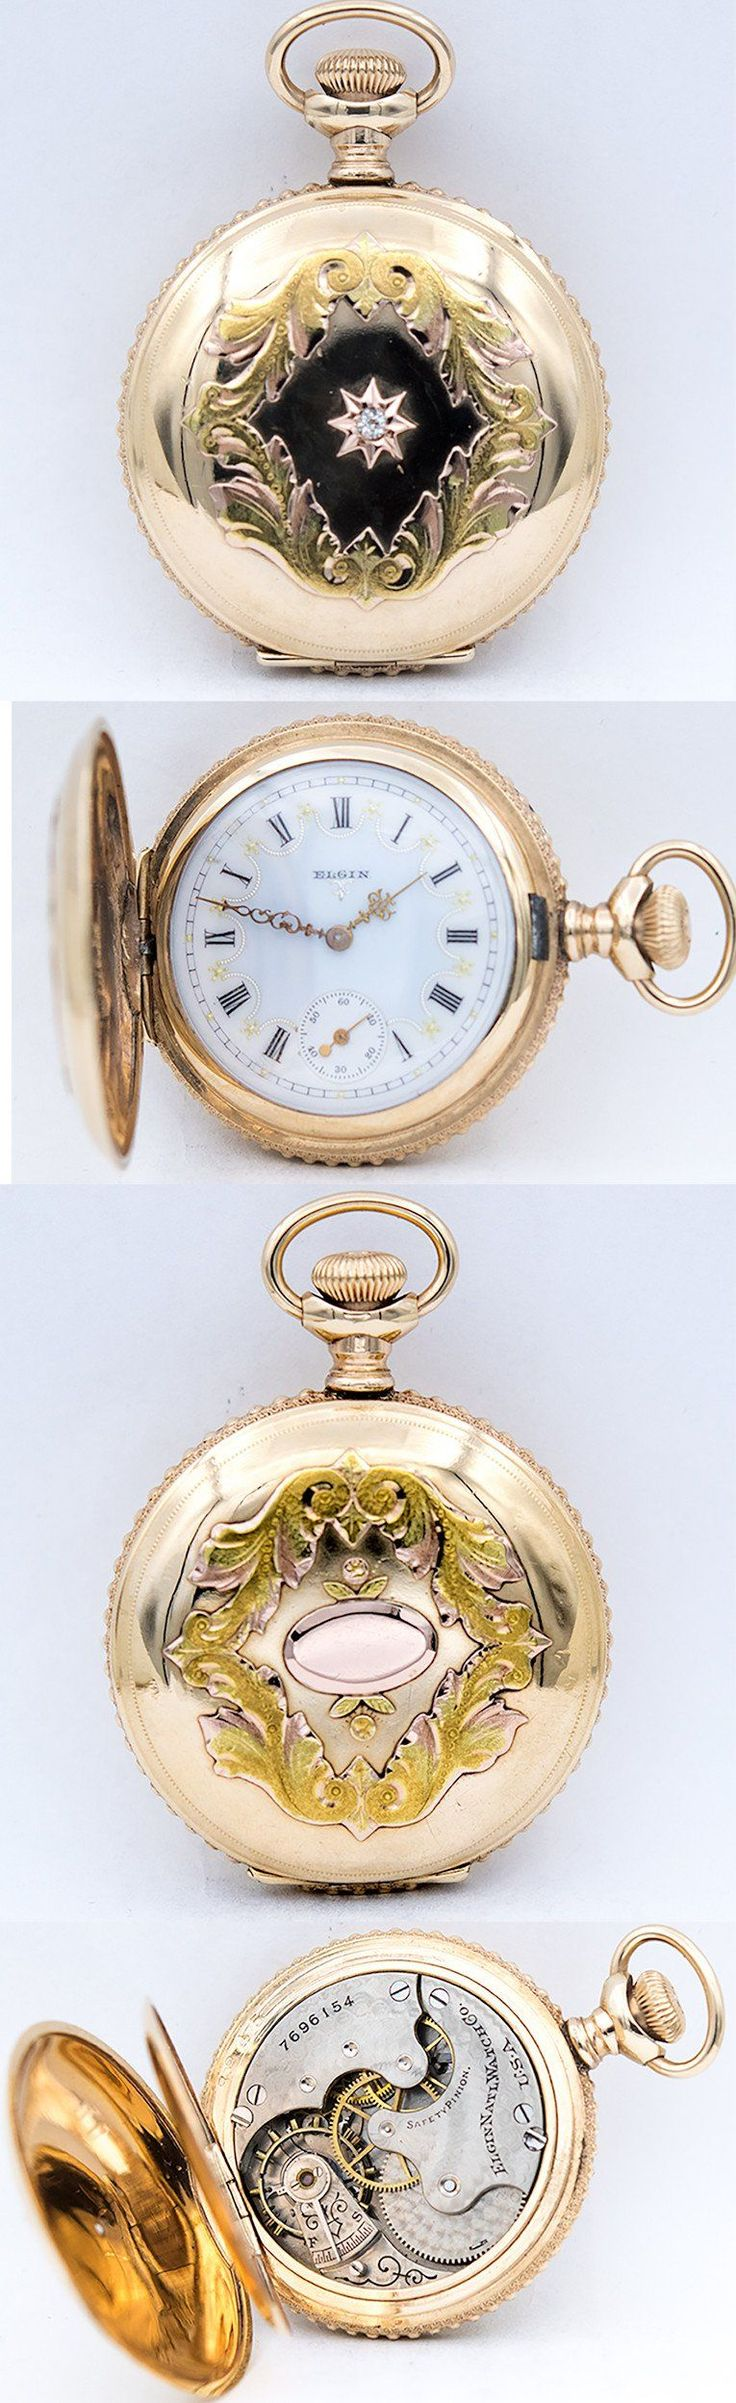 ELGIN Multicolor Pocket Watch - Available at Ashton-Blakey #vintagewatches #pocketwatches #antiquewatches